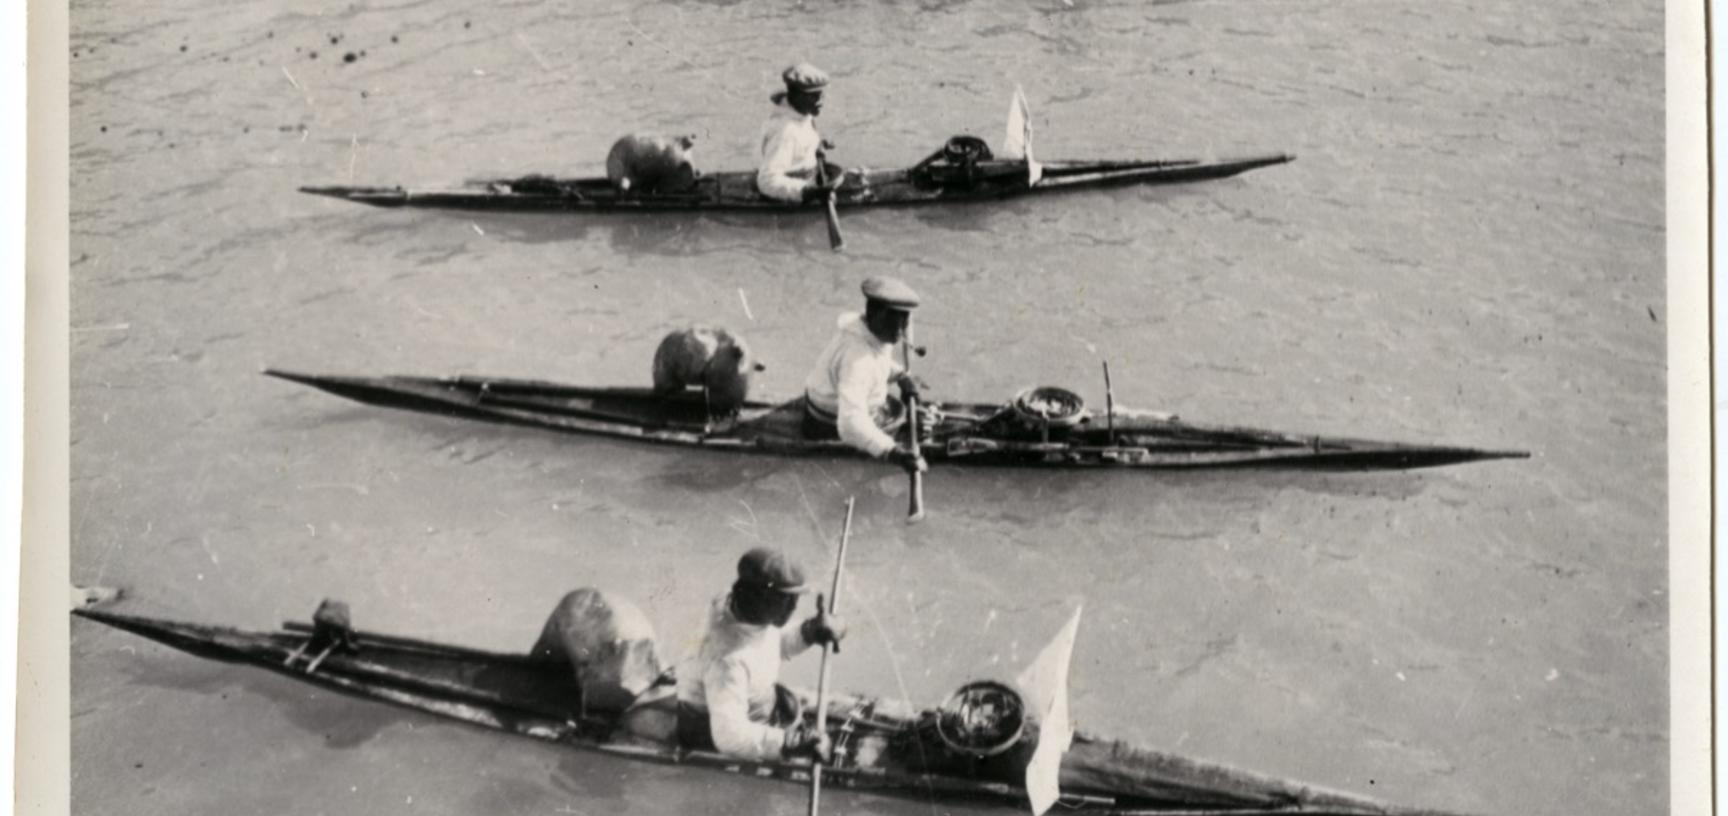 The white screens at the front of the kayaks were used to help disguise the hunters from unsuspecting seals in the water. Photograph by Henry Iliffe Cozens. Greenland. 1930–1931.